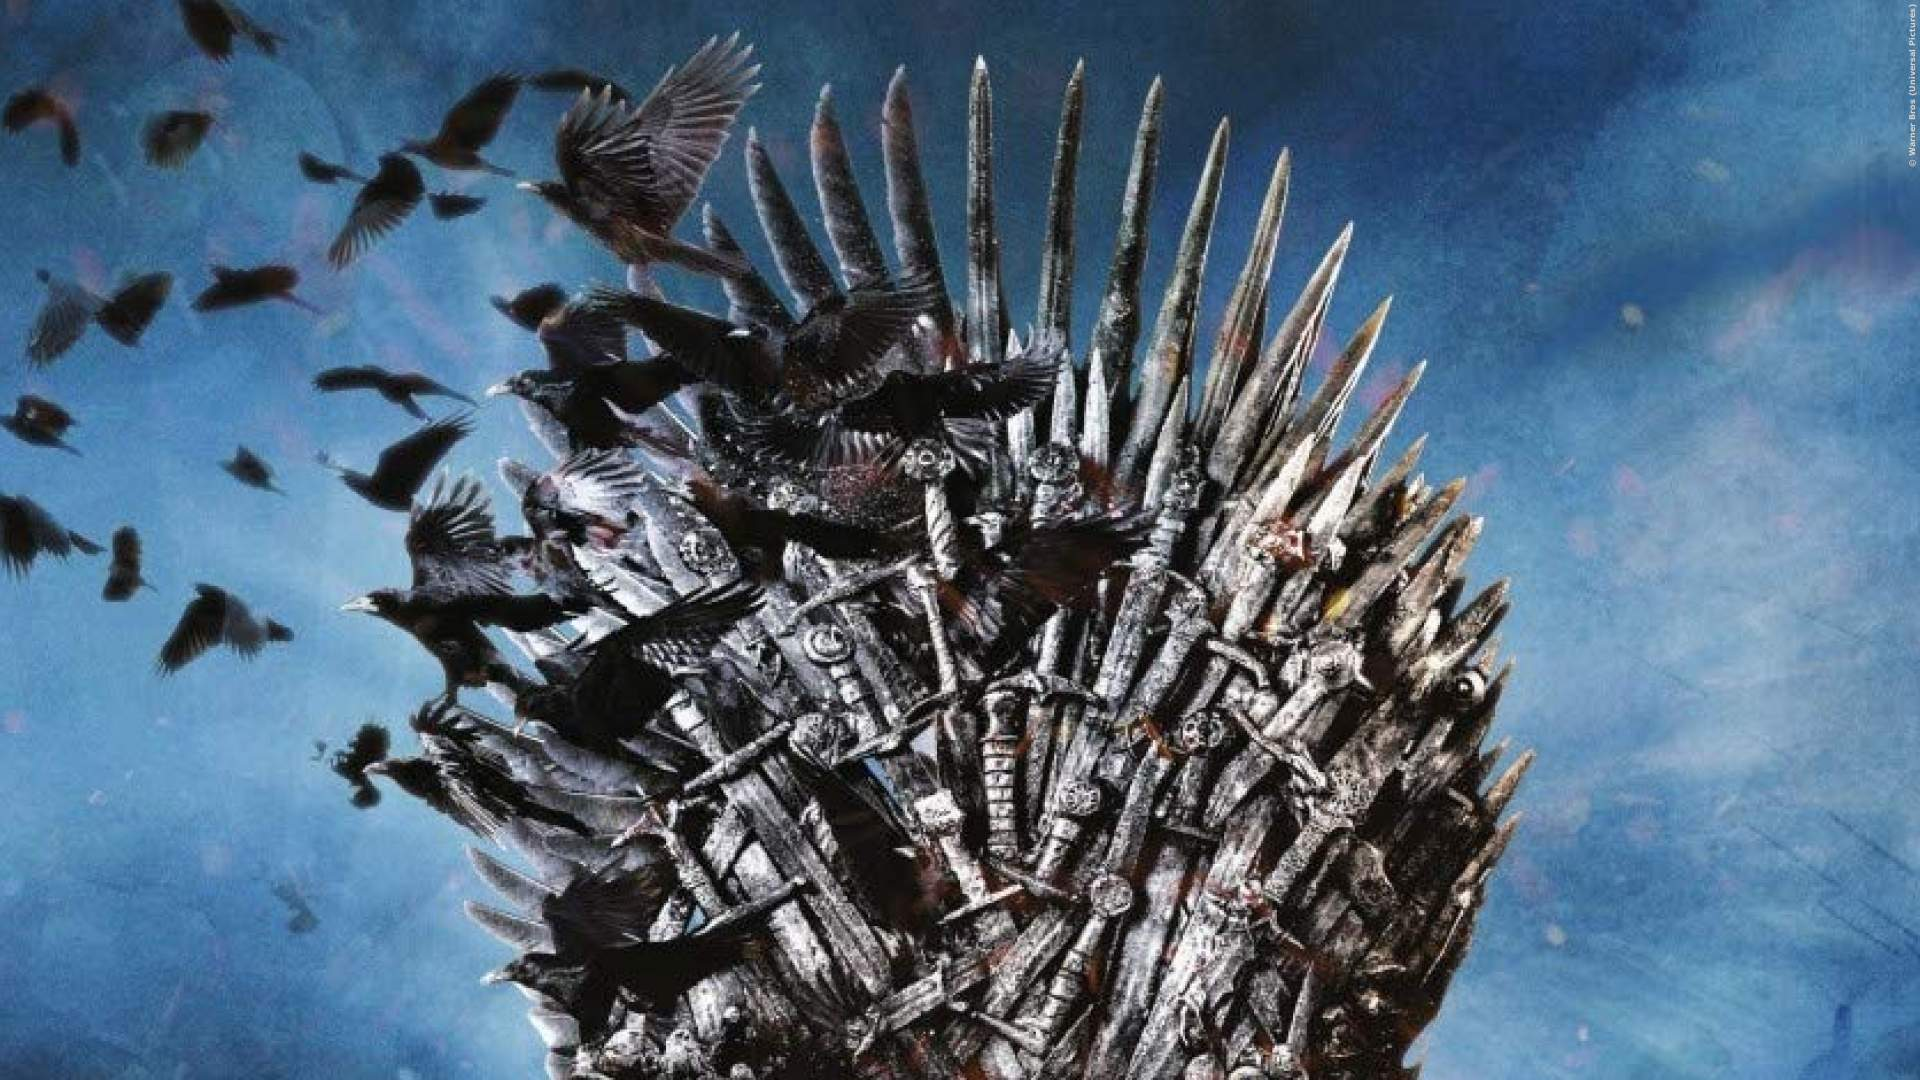 Game Of Thrones Fans by FILM.TV - Cover